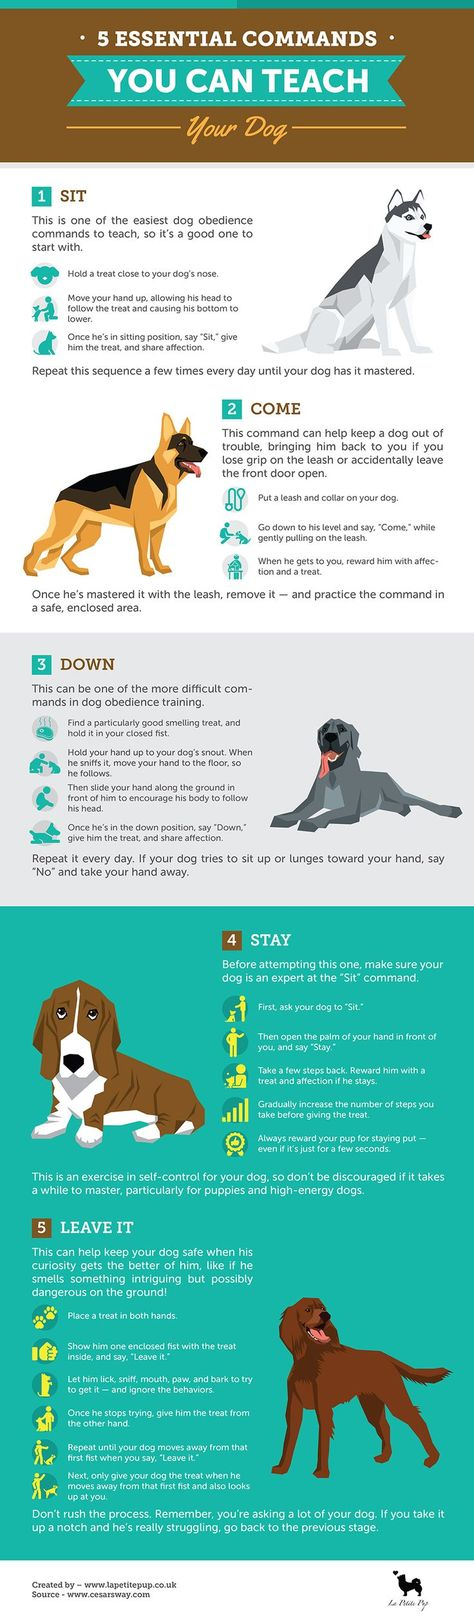 Dog Training 101 – How To Train Your Dog